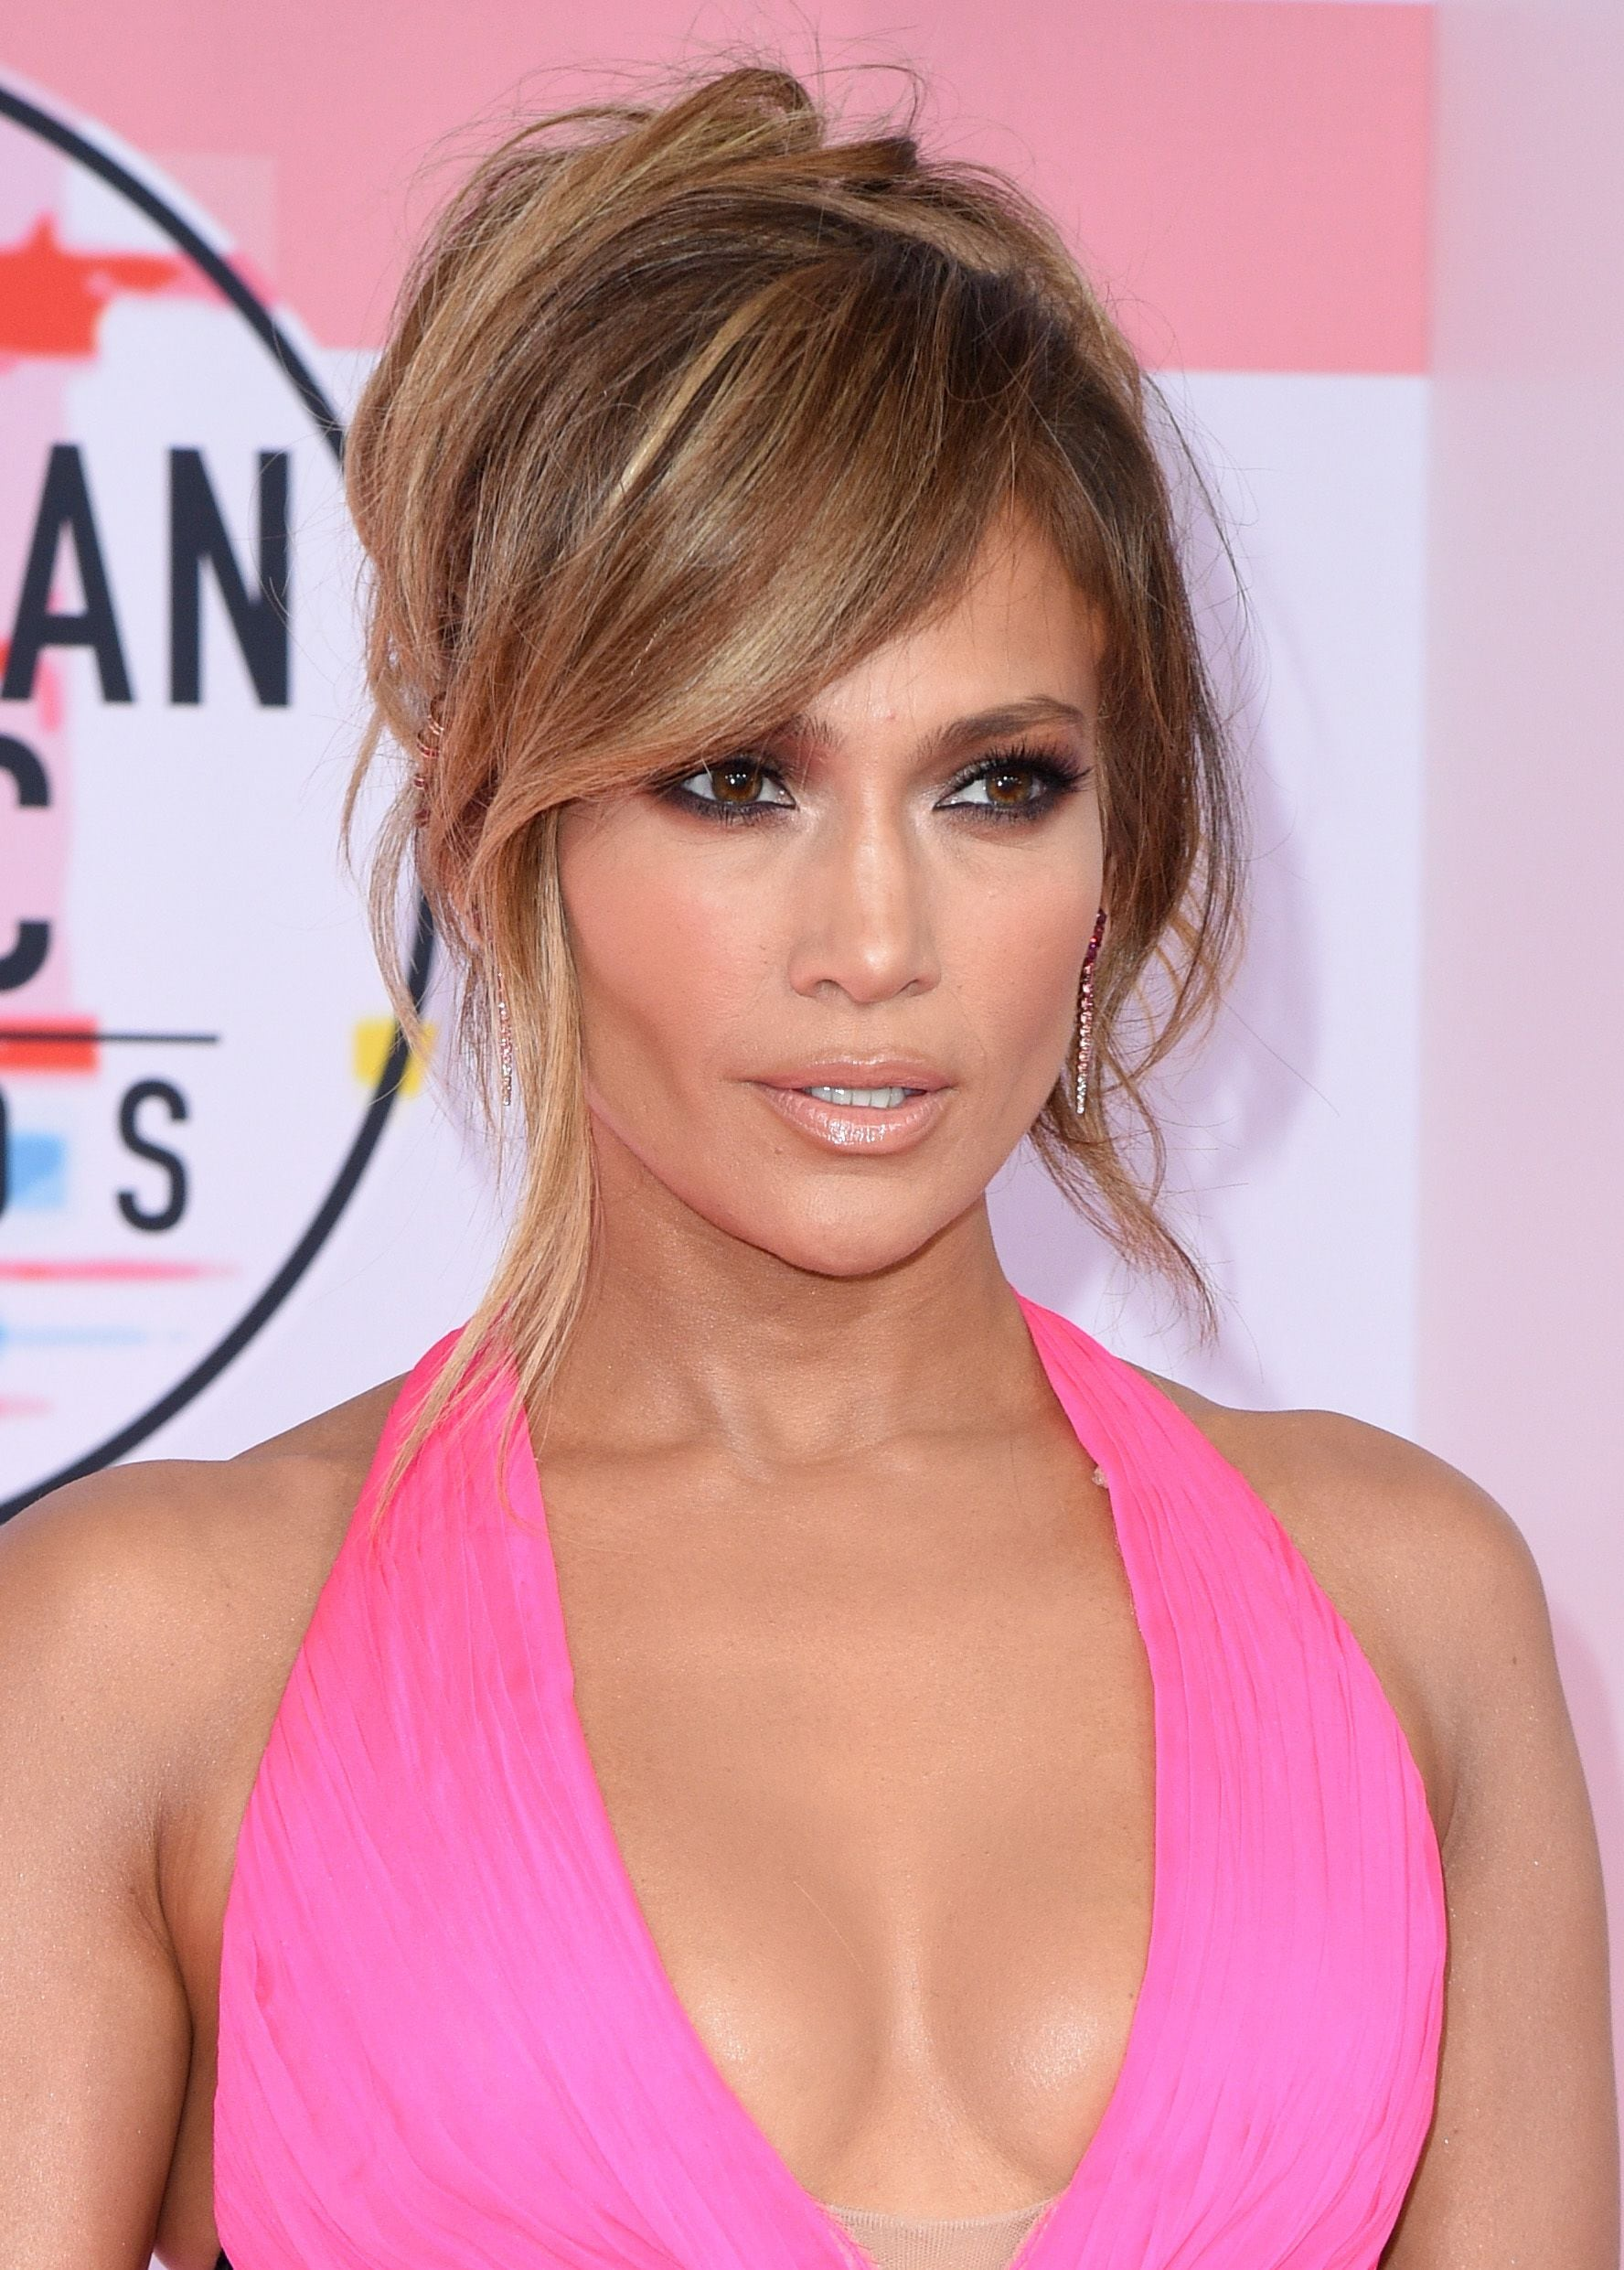 Winter hairstyles 2018: Jennifer Lopez (J-Lo) with a wispy updo with a side swooping fringe